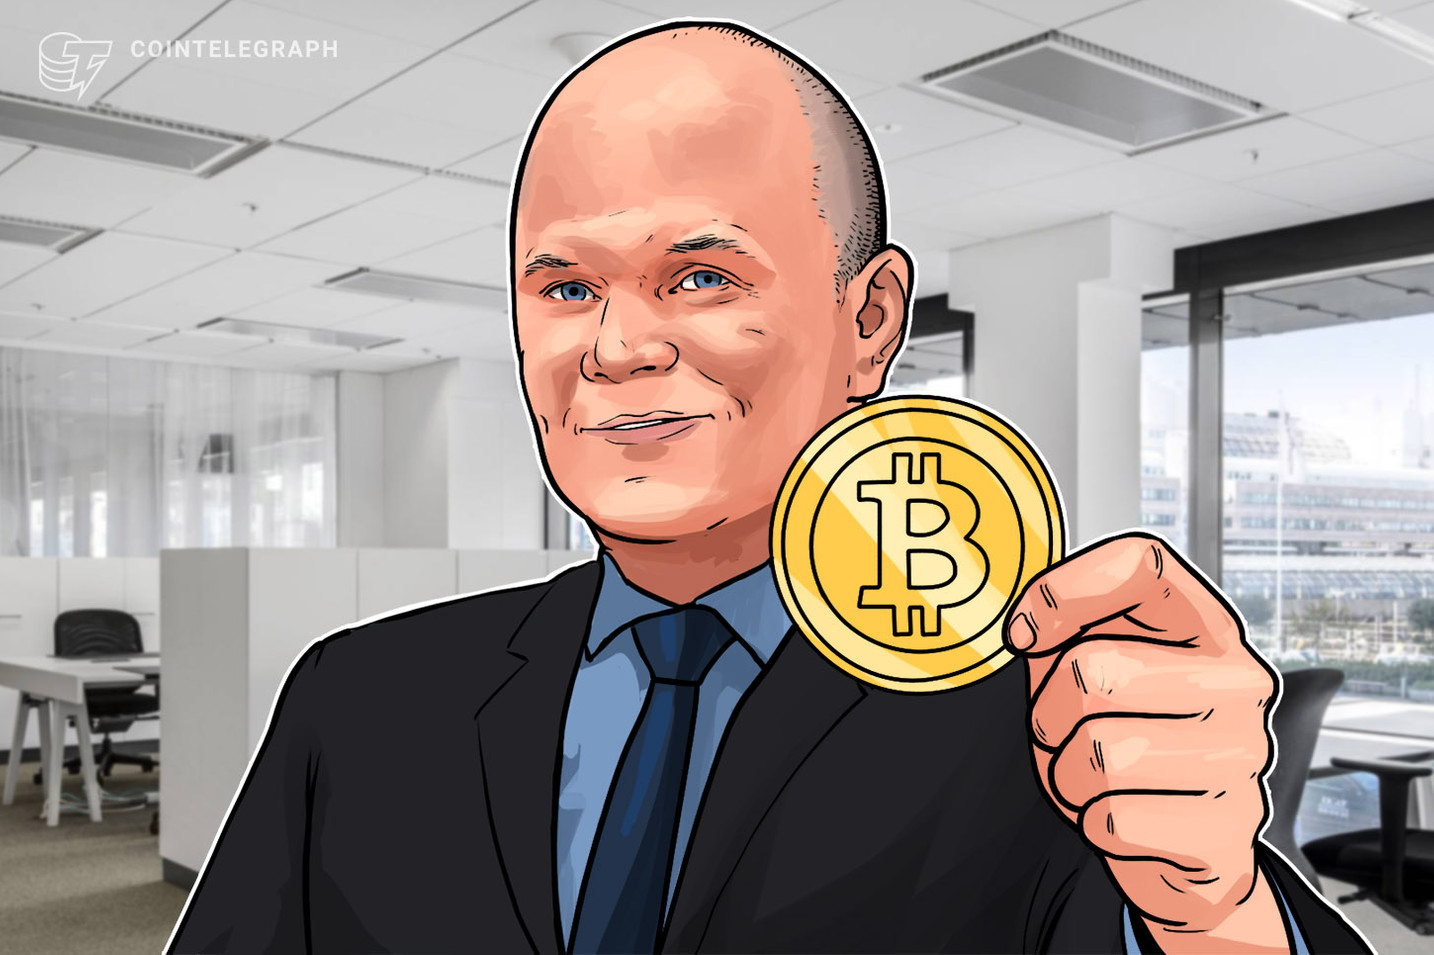 Novogratz prognostiziert 20.000 US-Dollar Bitcoin-Kurs in 2019